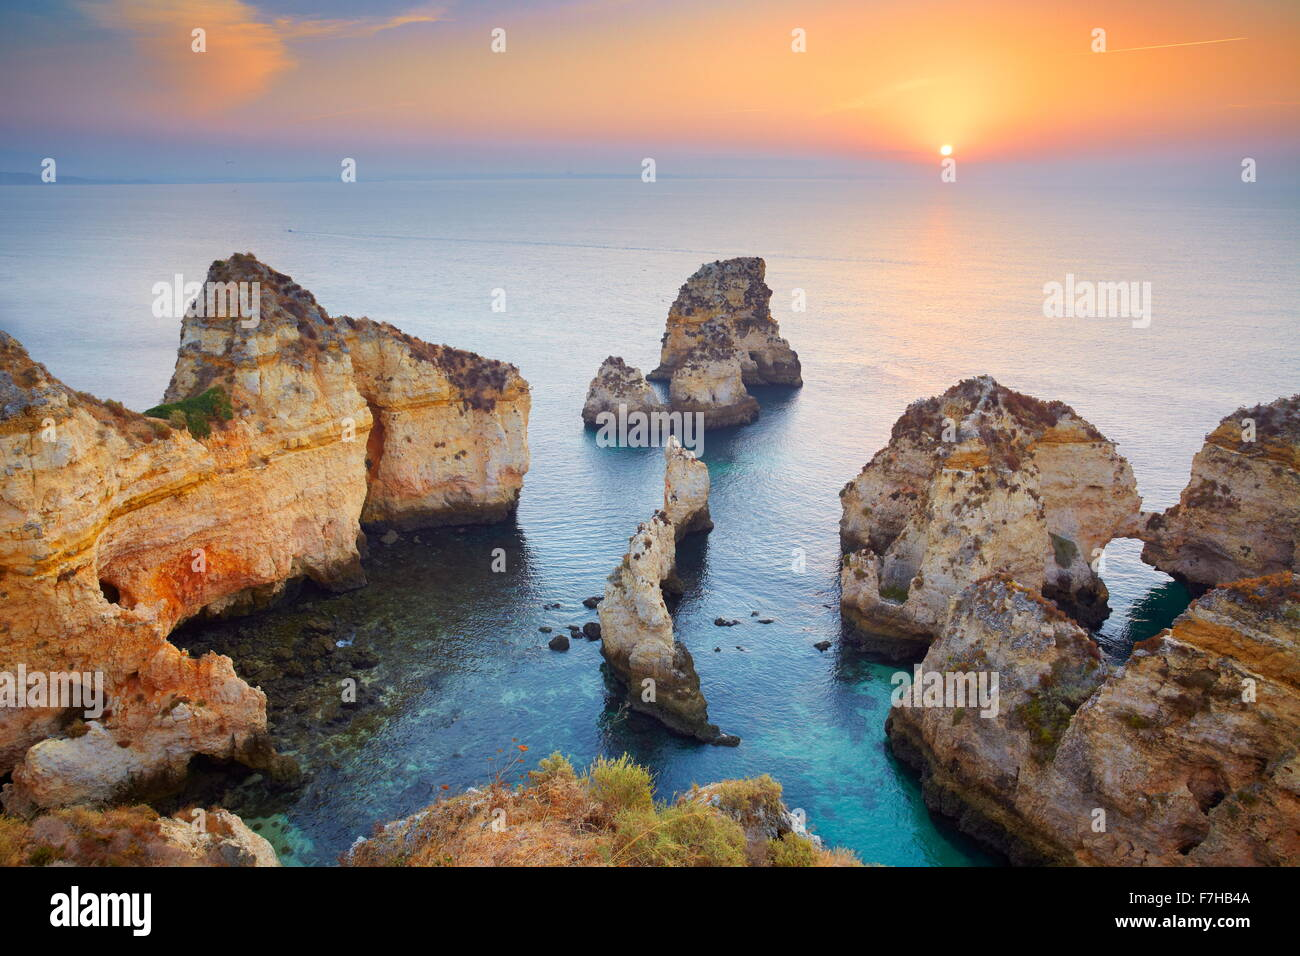 Sunrise at Algarve coast near Lagos, Portugal - Stock Image